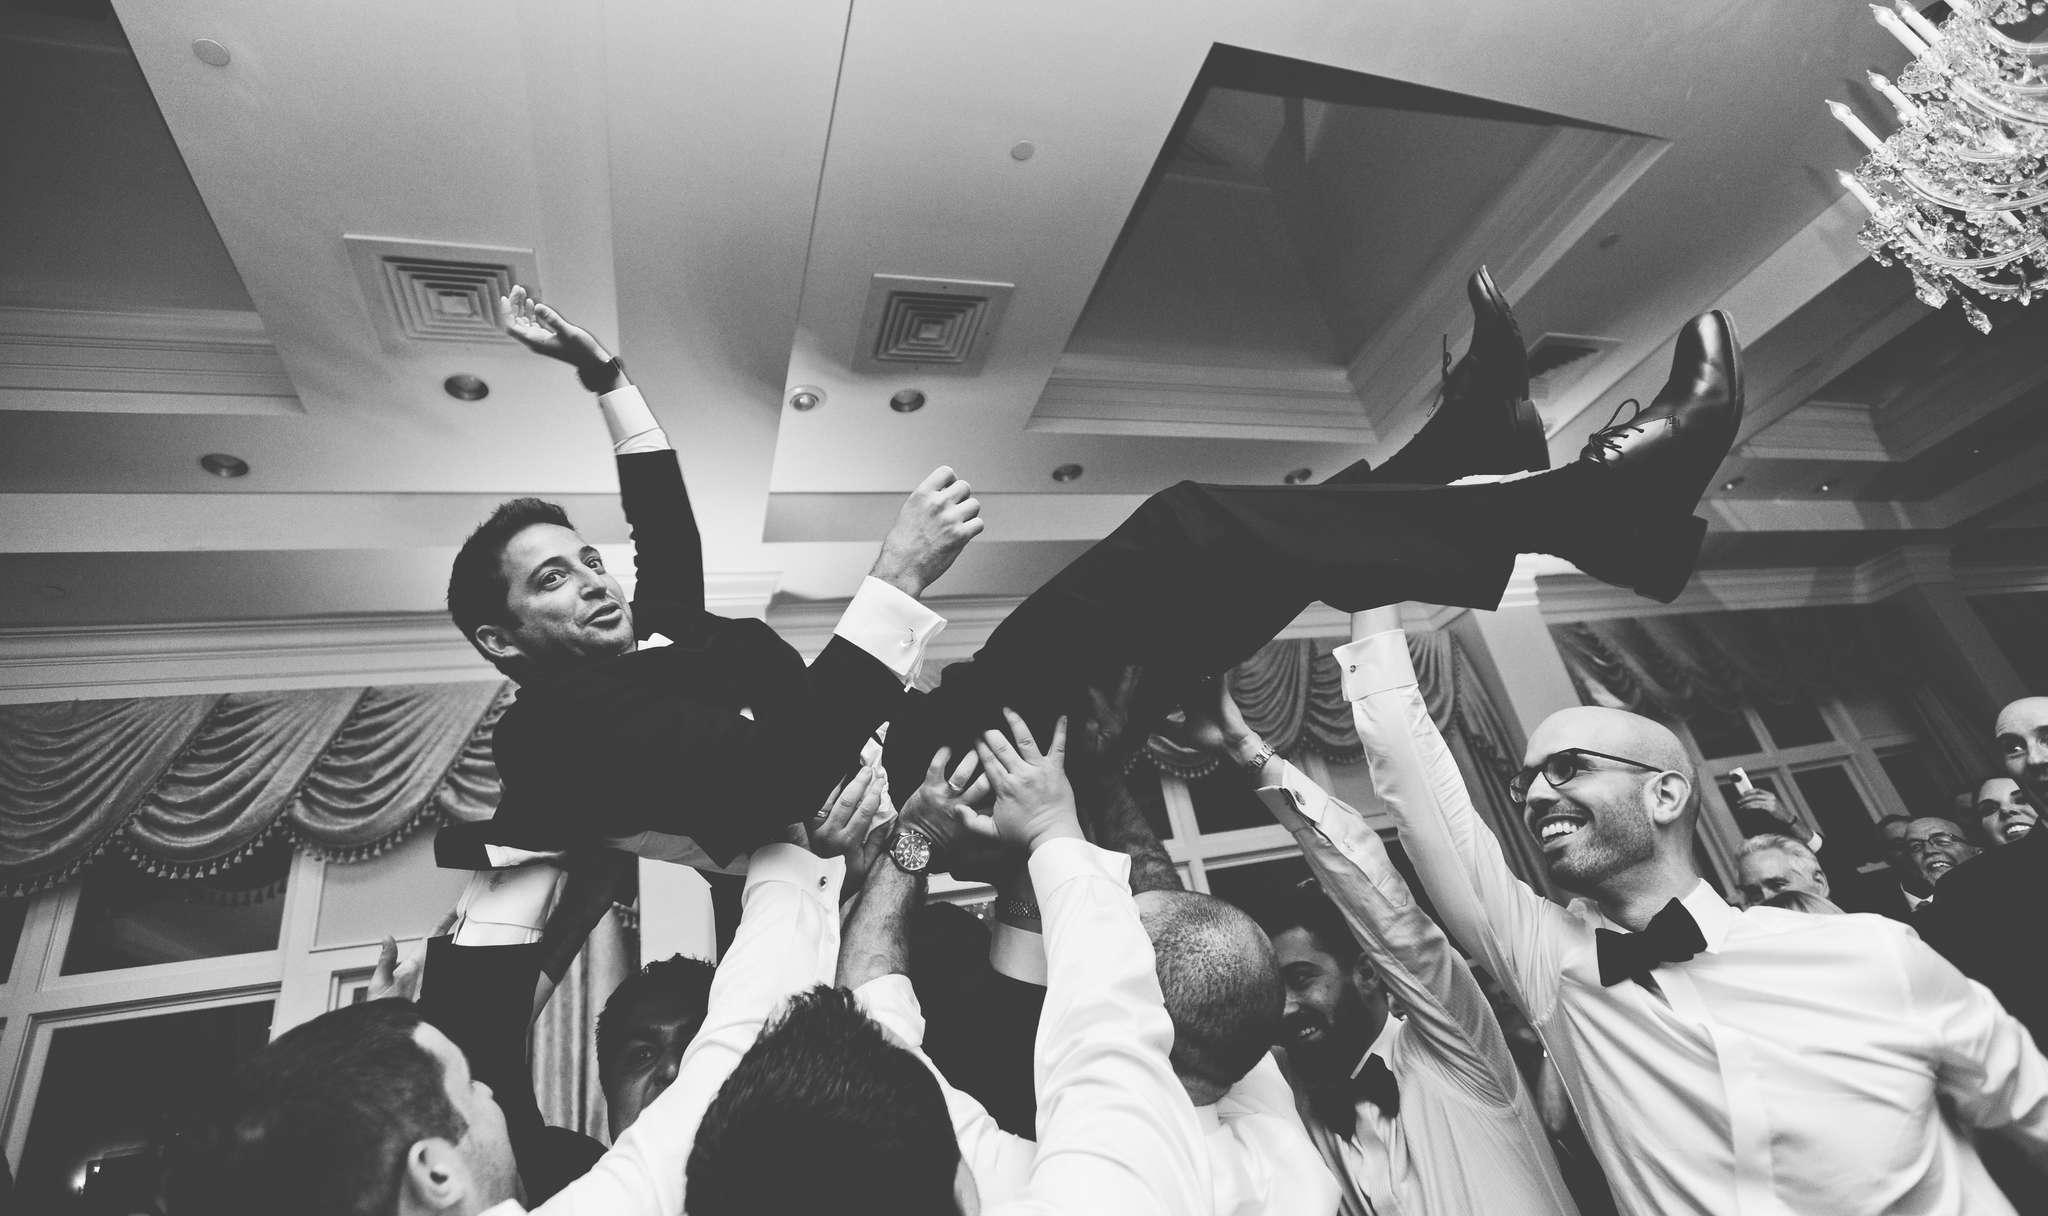 At one point, groom Greg Markus crowd-surfed. Mostly, he danced with his bride.